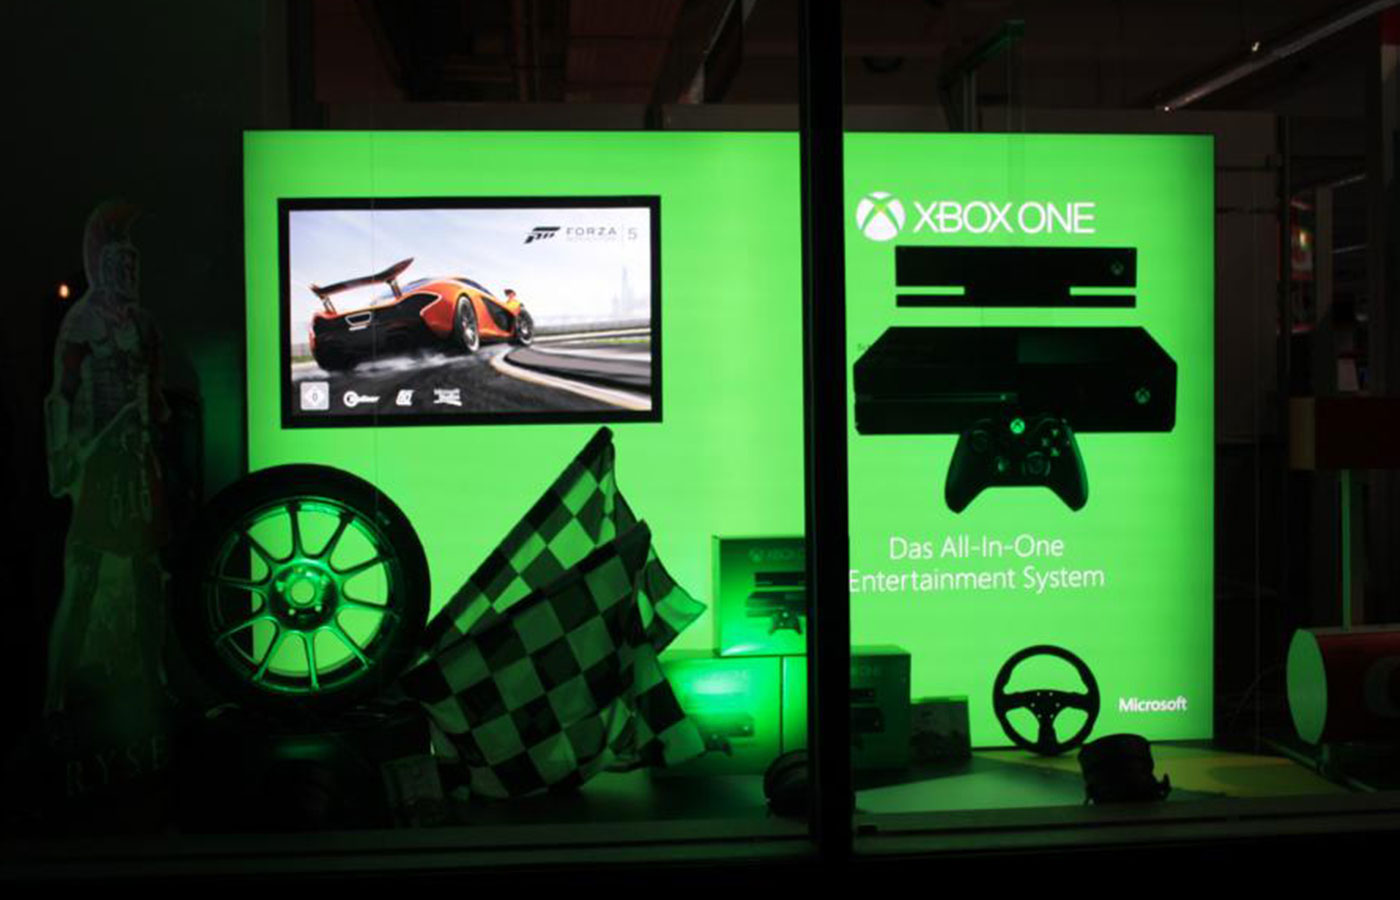 Microsoft Xbox One Launch – Marketing Display Design and Production